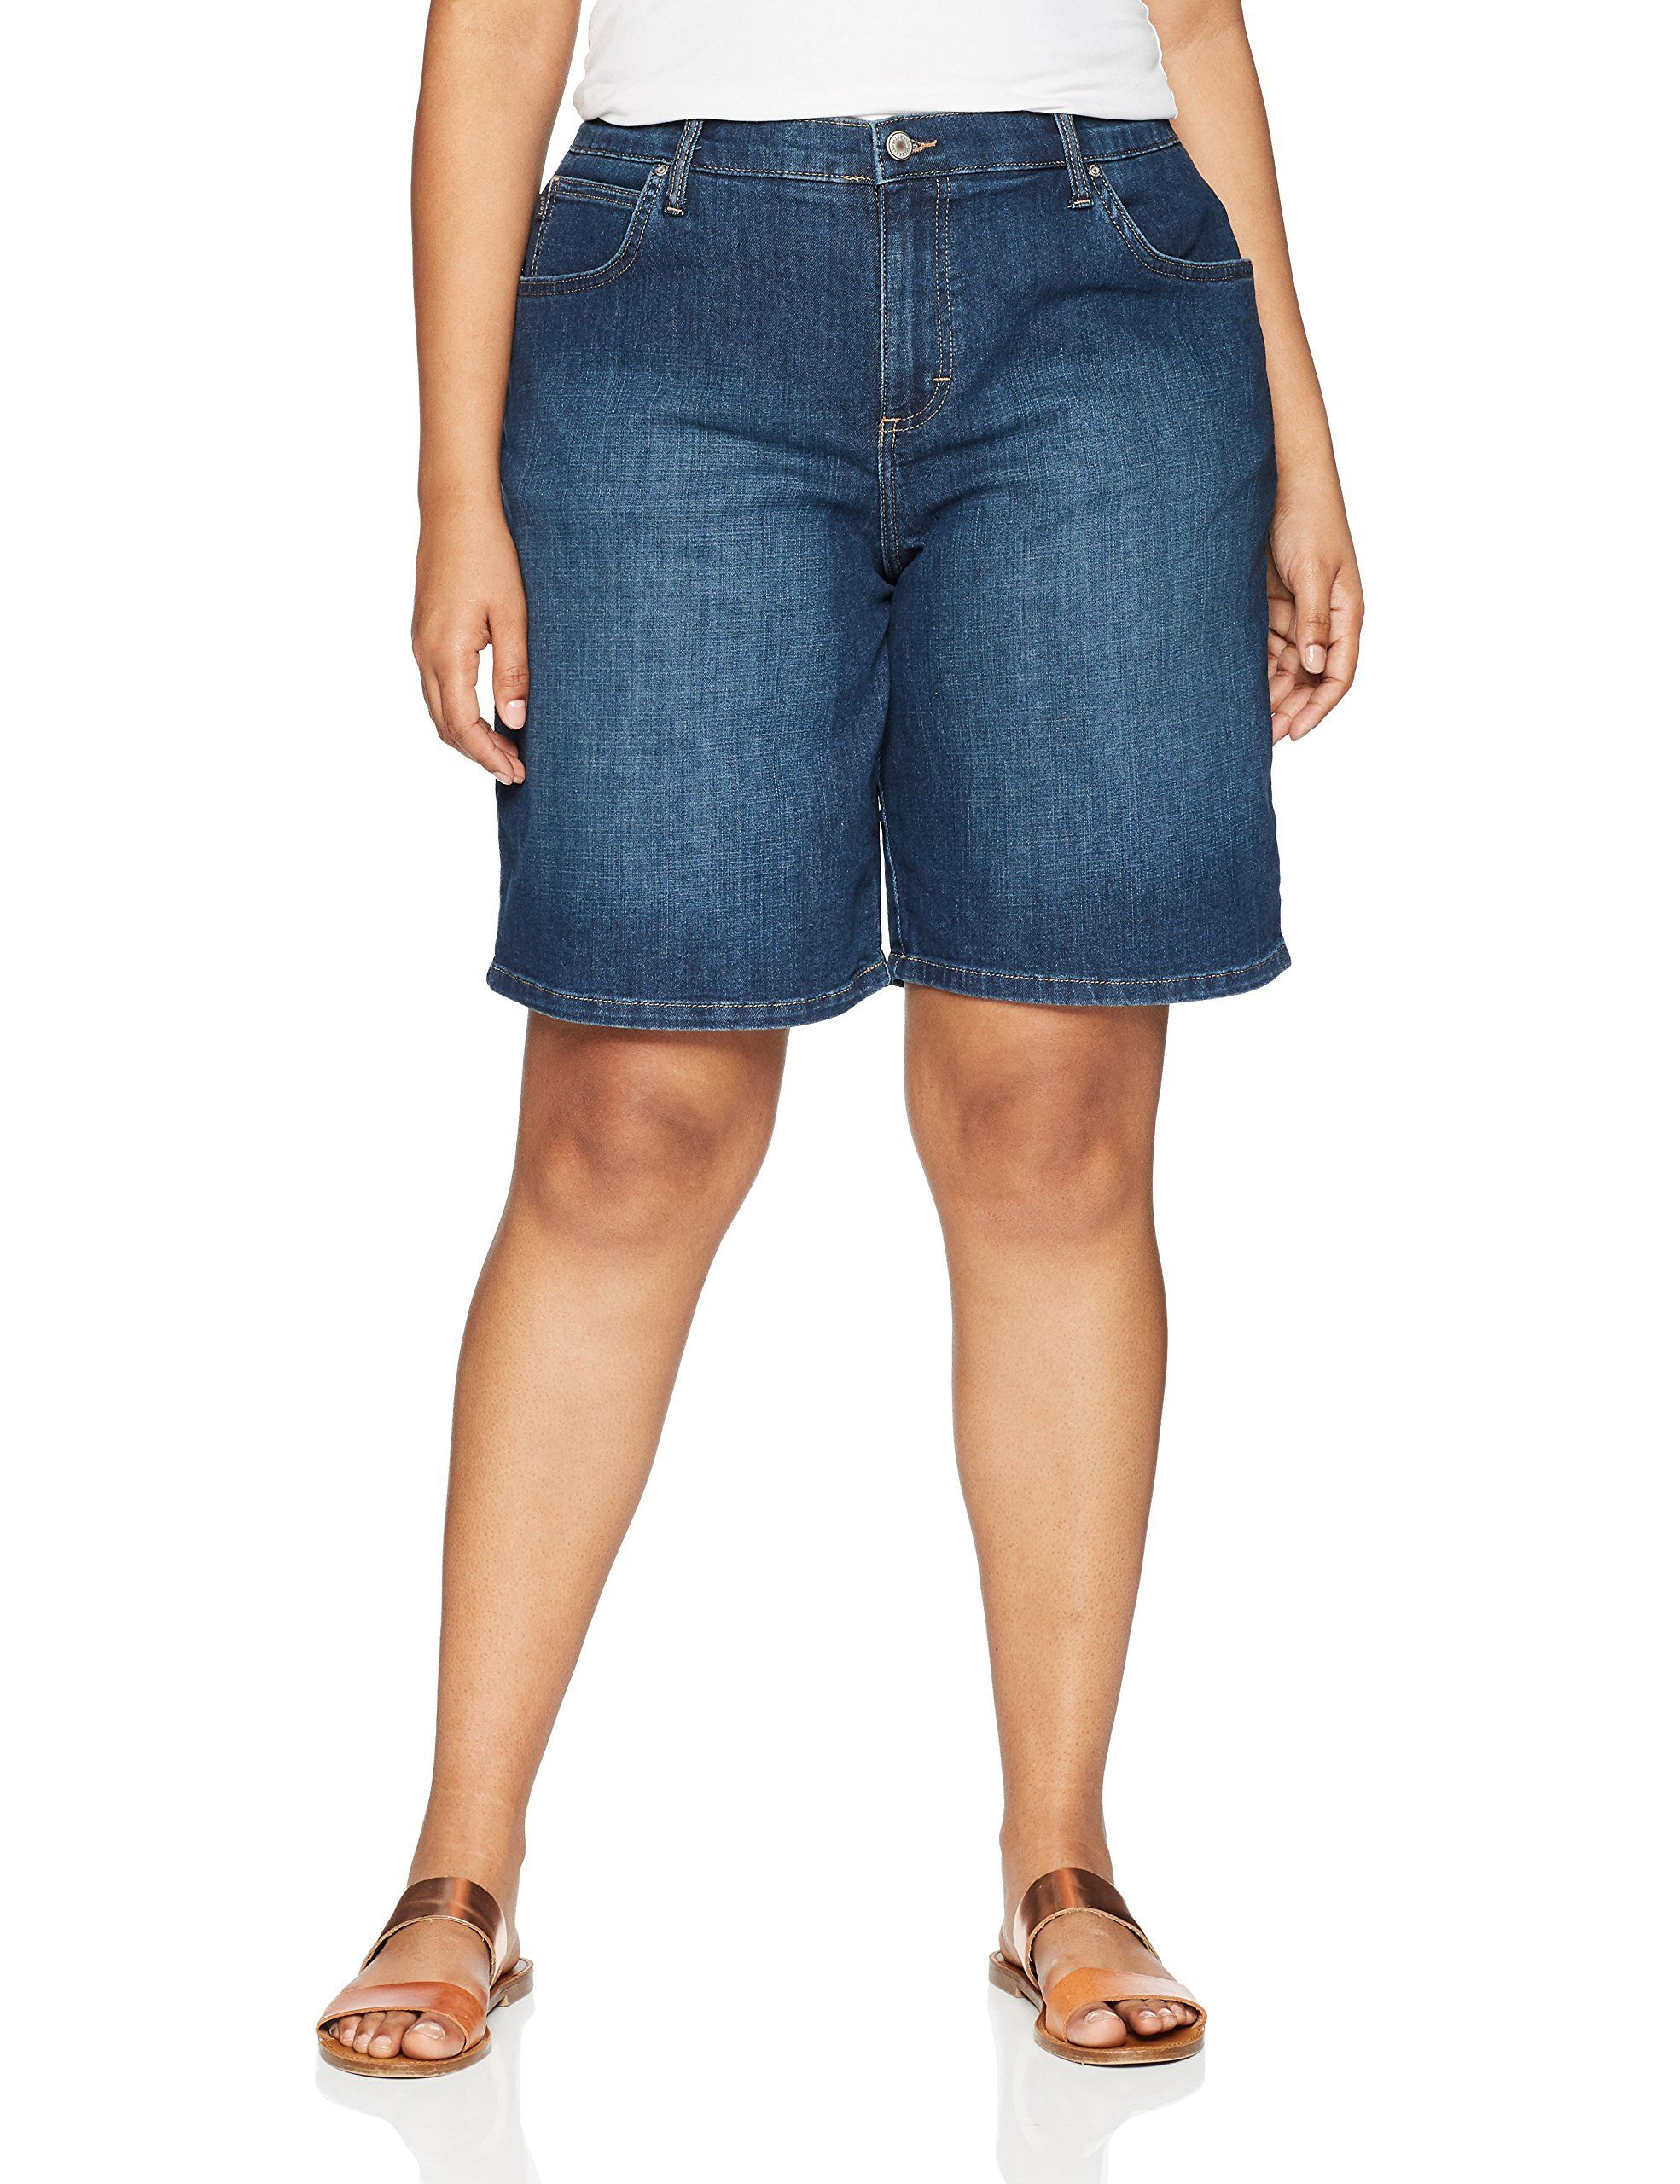 Chic Classic Collection Womens Stretch Elastic Waist Pull on Denim Bermuda